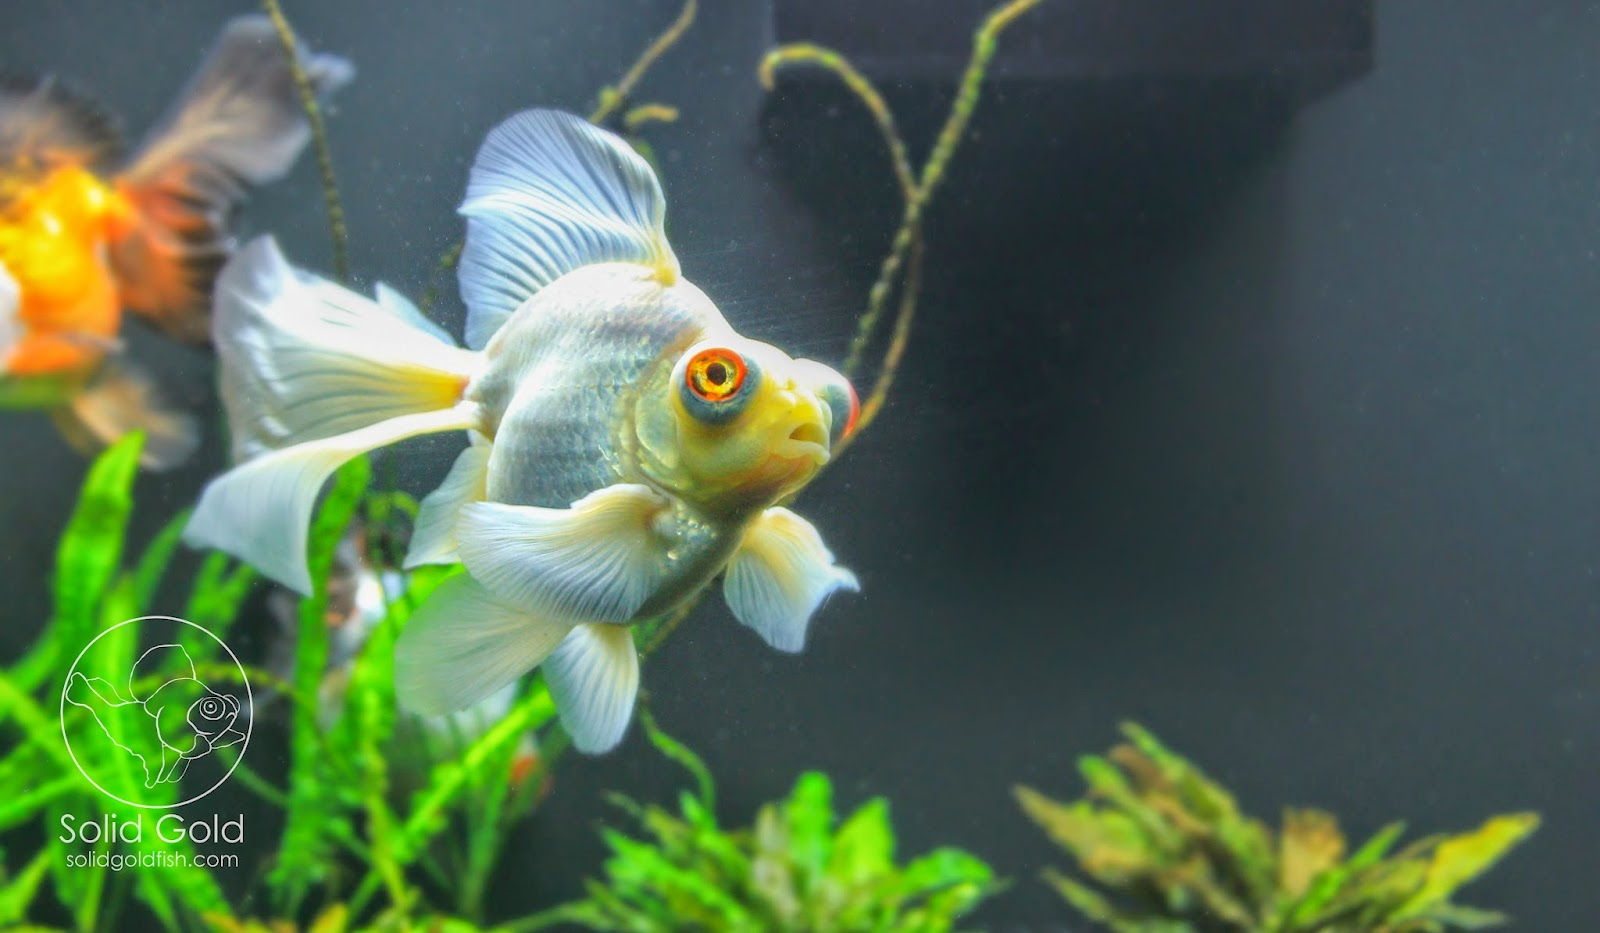 Underwater Camera Captures Hand-Feeding Goldfish